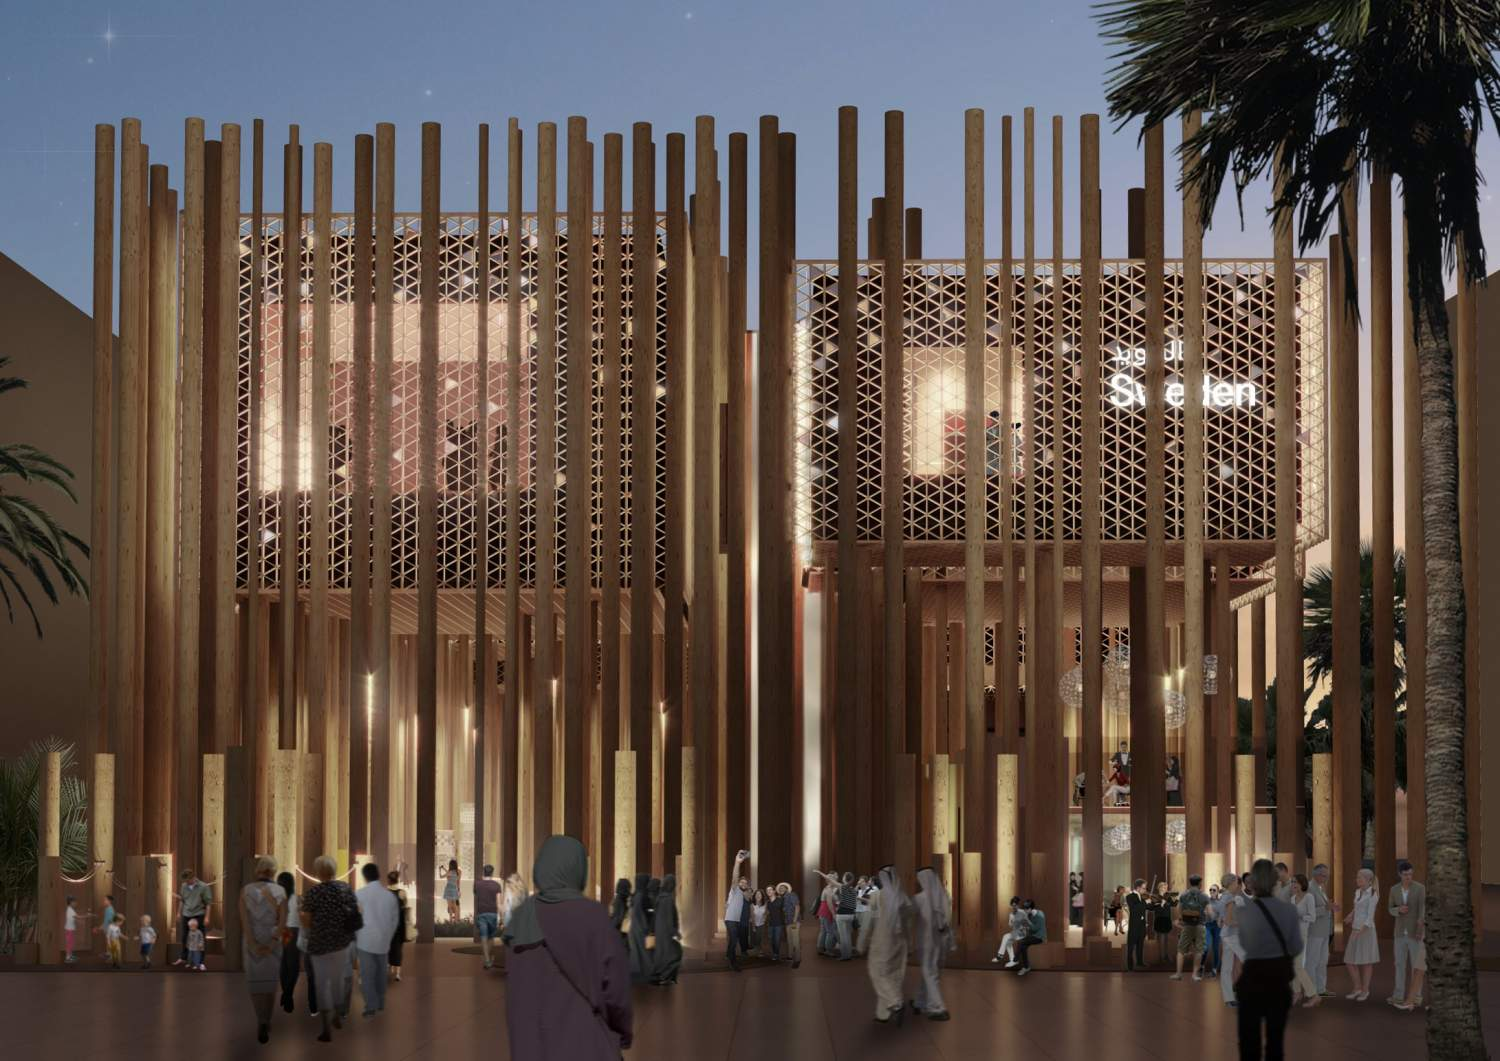 Absolicon at Swedish pavilion 'The Forest' at the World Expo in Dubai